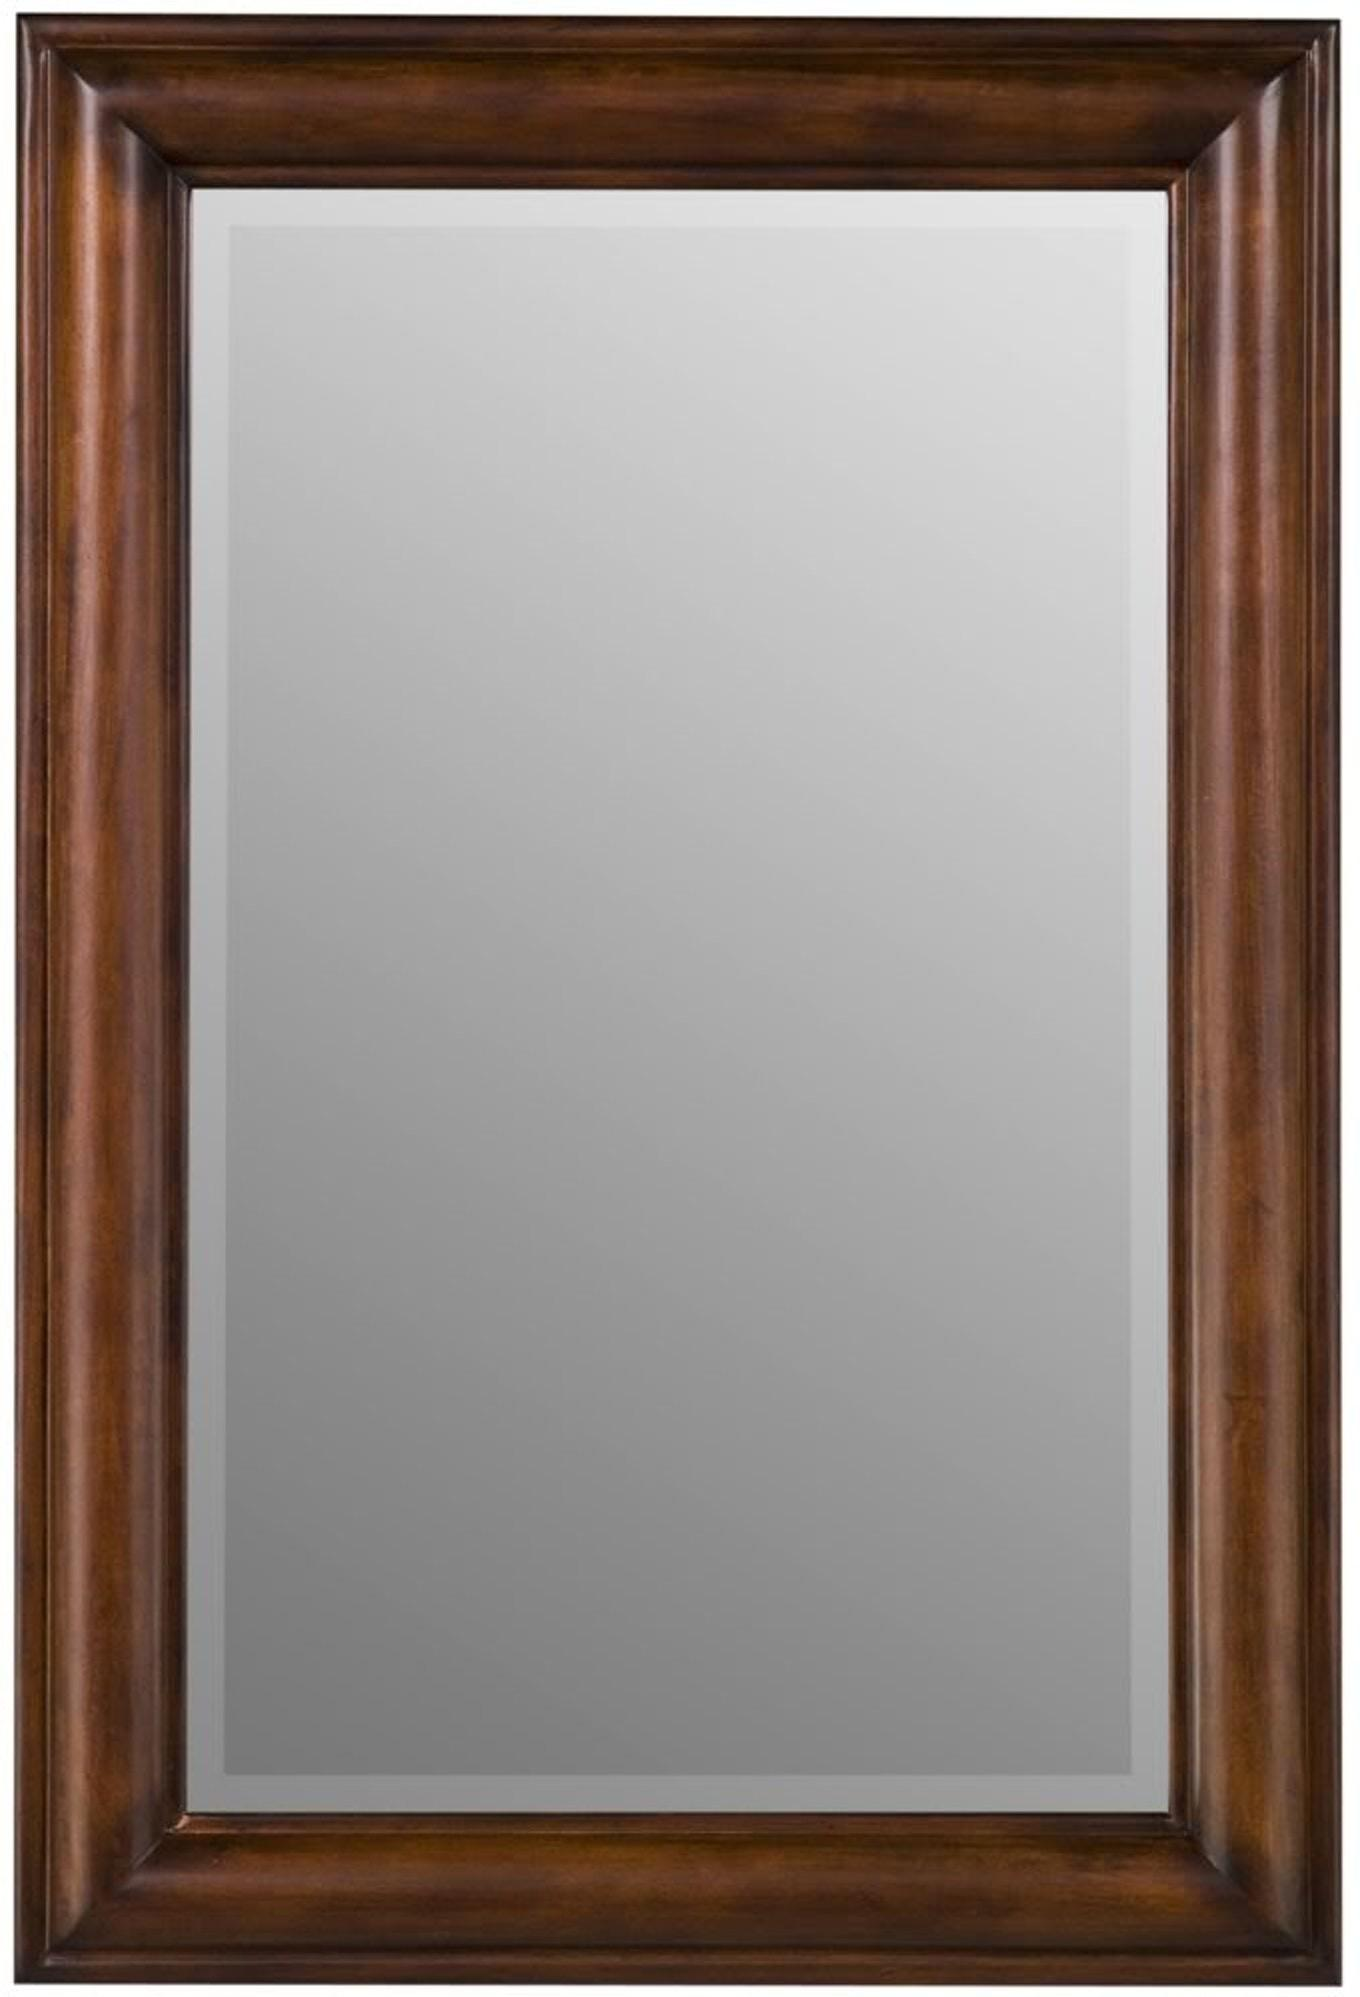 Hanging Bathroom Mirrors Frame Large